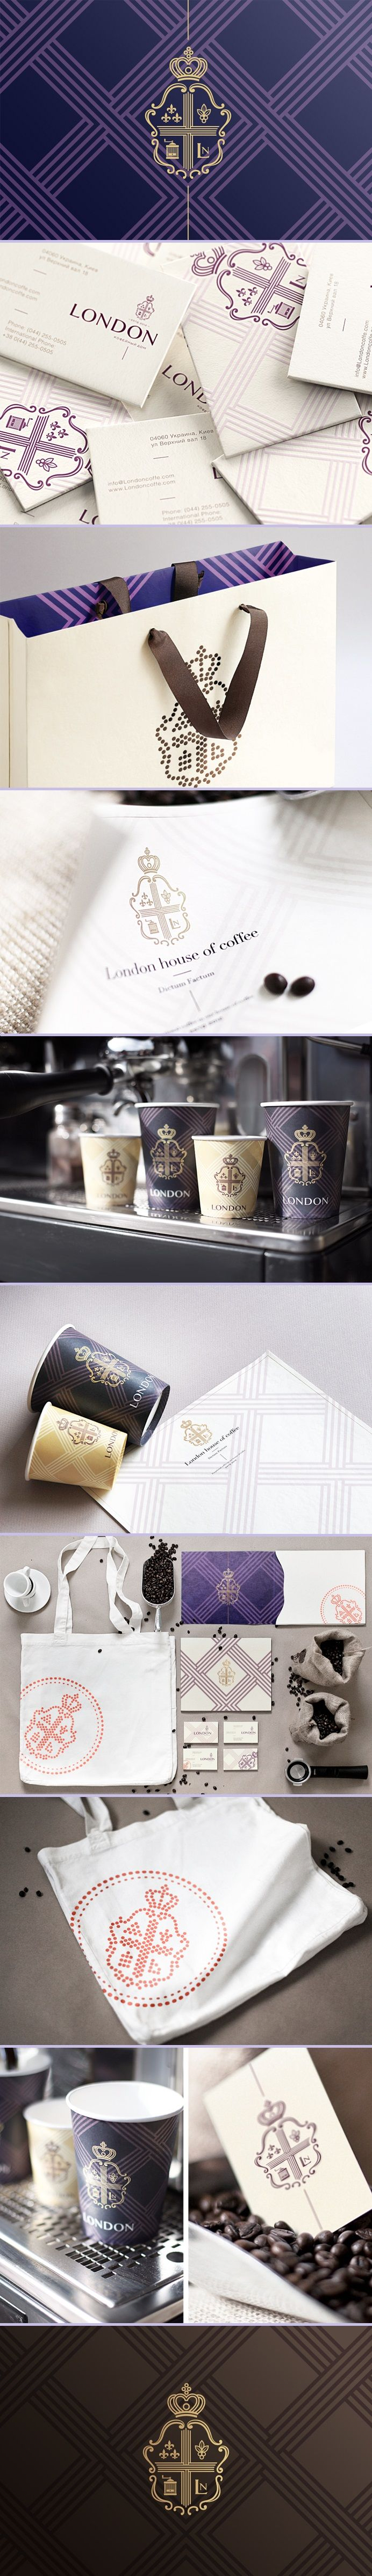 Love this creative packaging solution by the Coffee House London, do you?